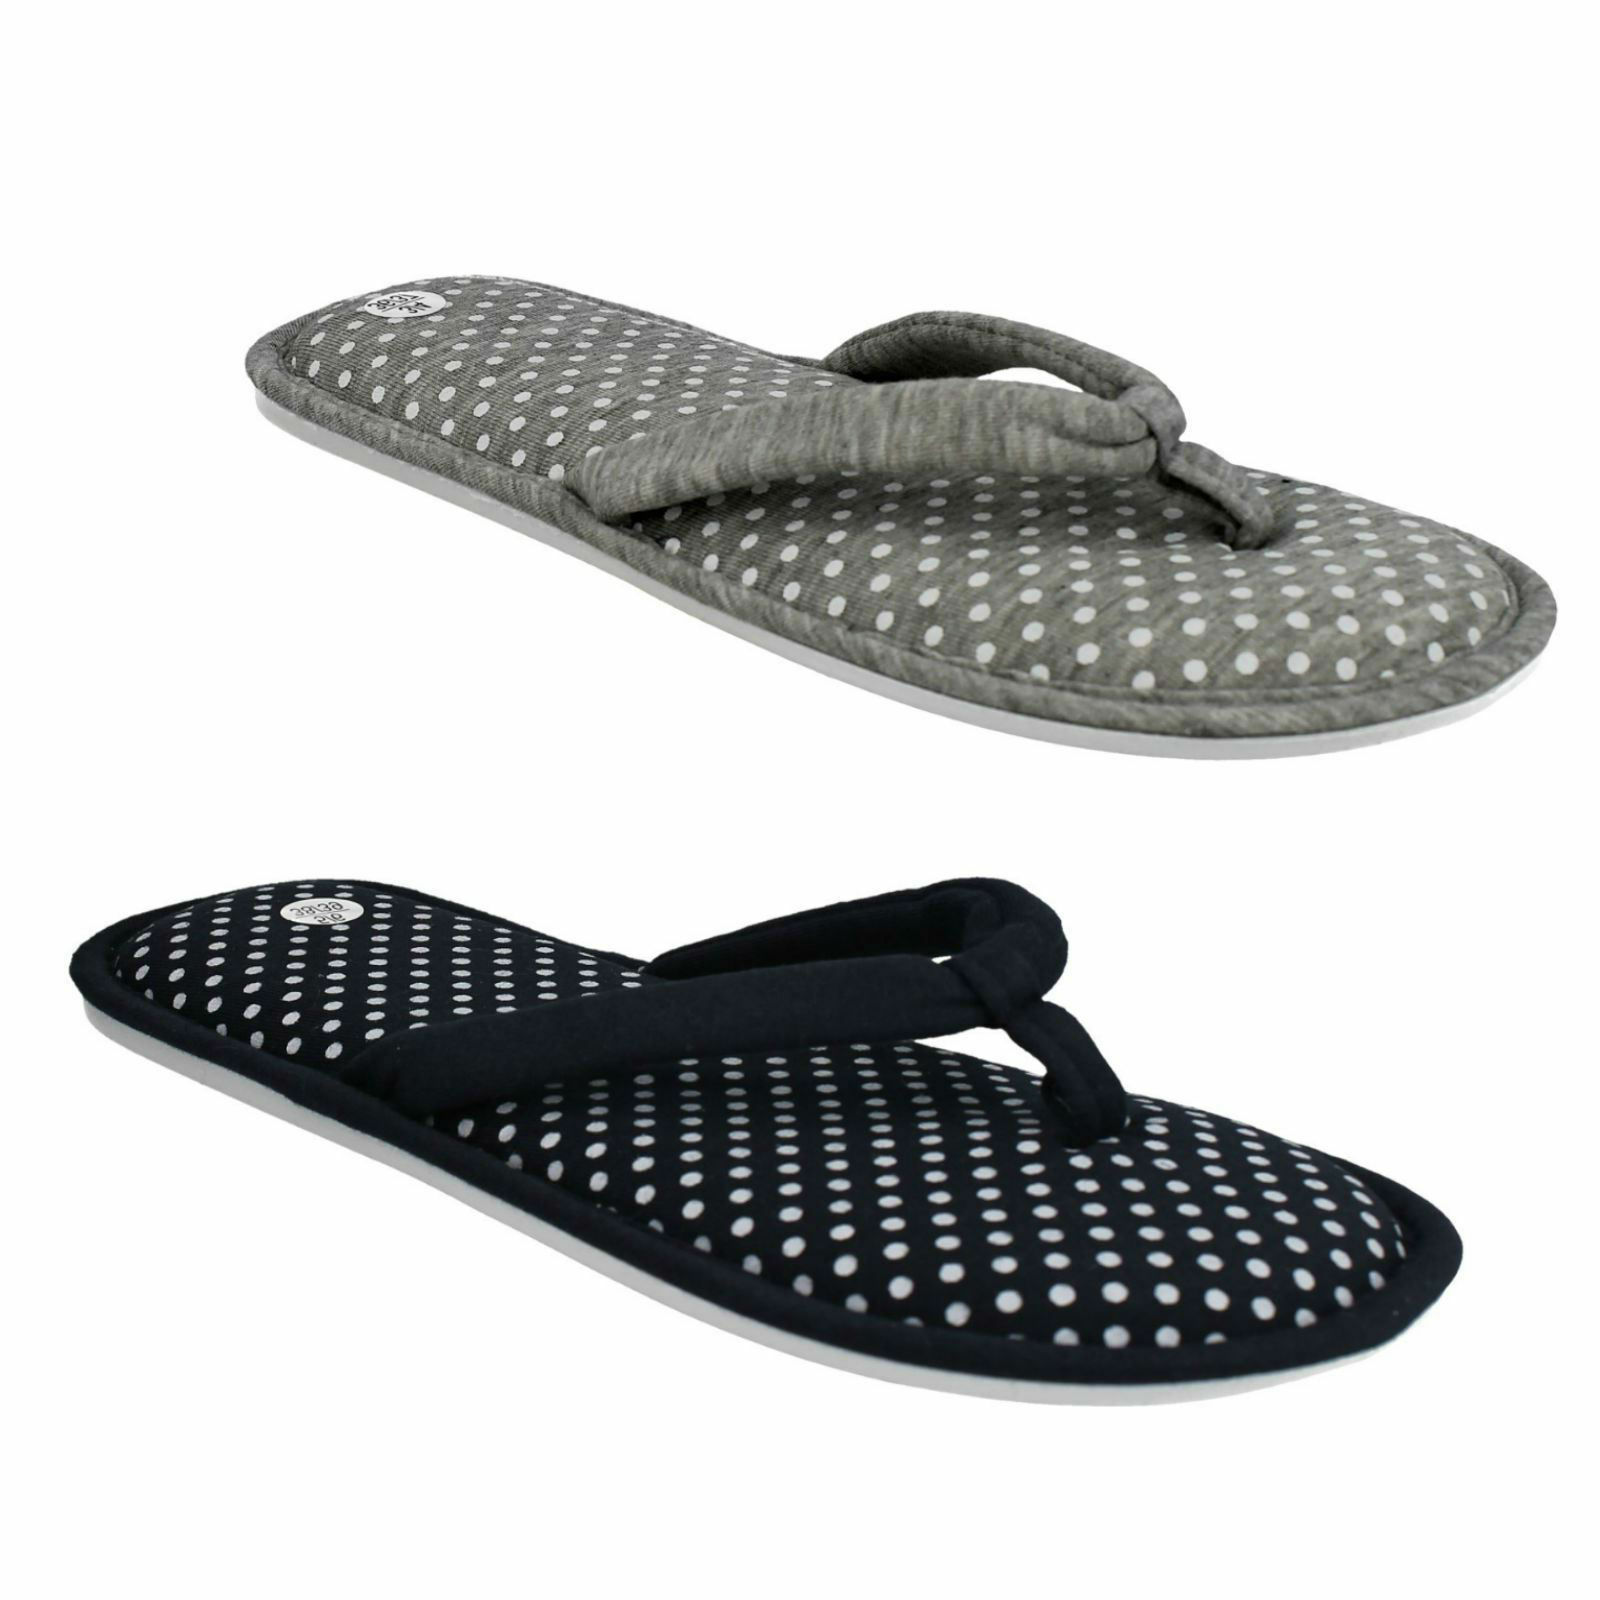 X2100 SPOT ON HOUSE LADIES INDOOR SLIP ON MULES HOUSE ON LOUNGE SLIPPERS f0f699